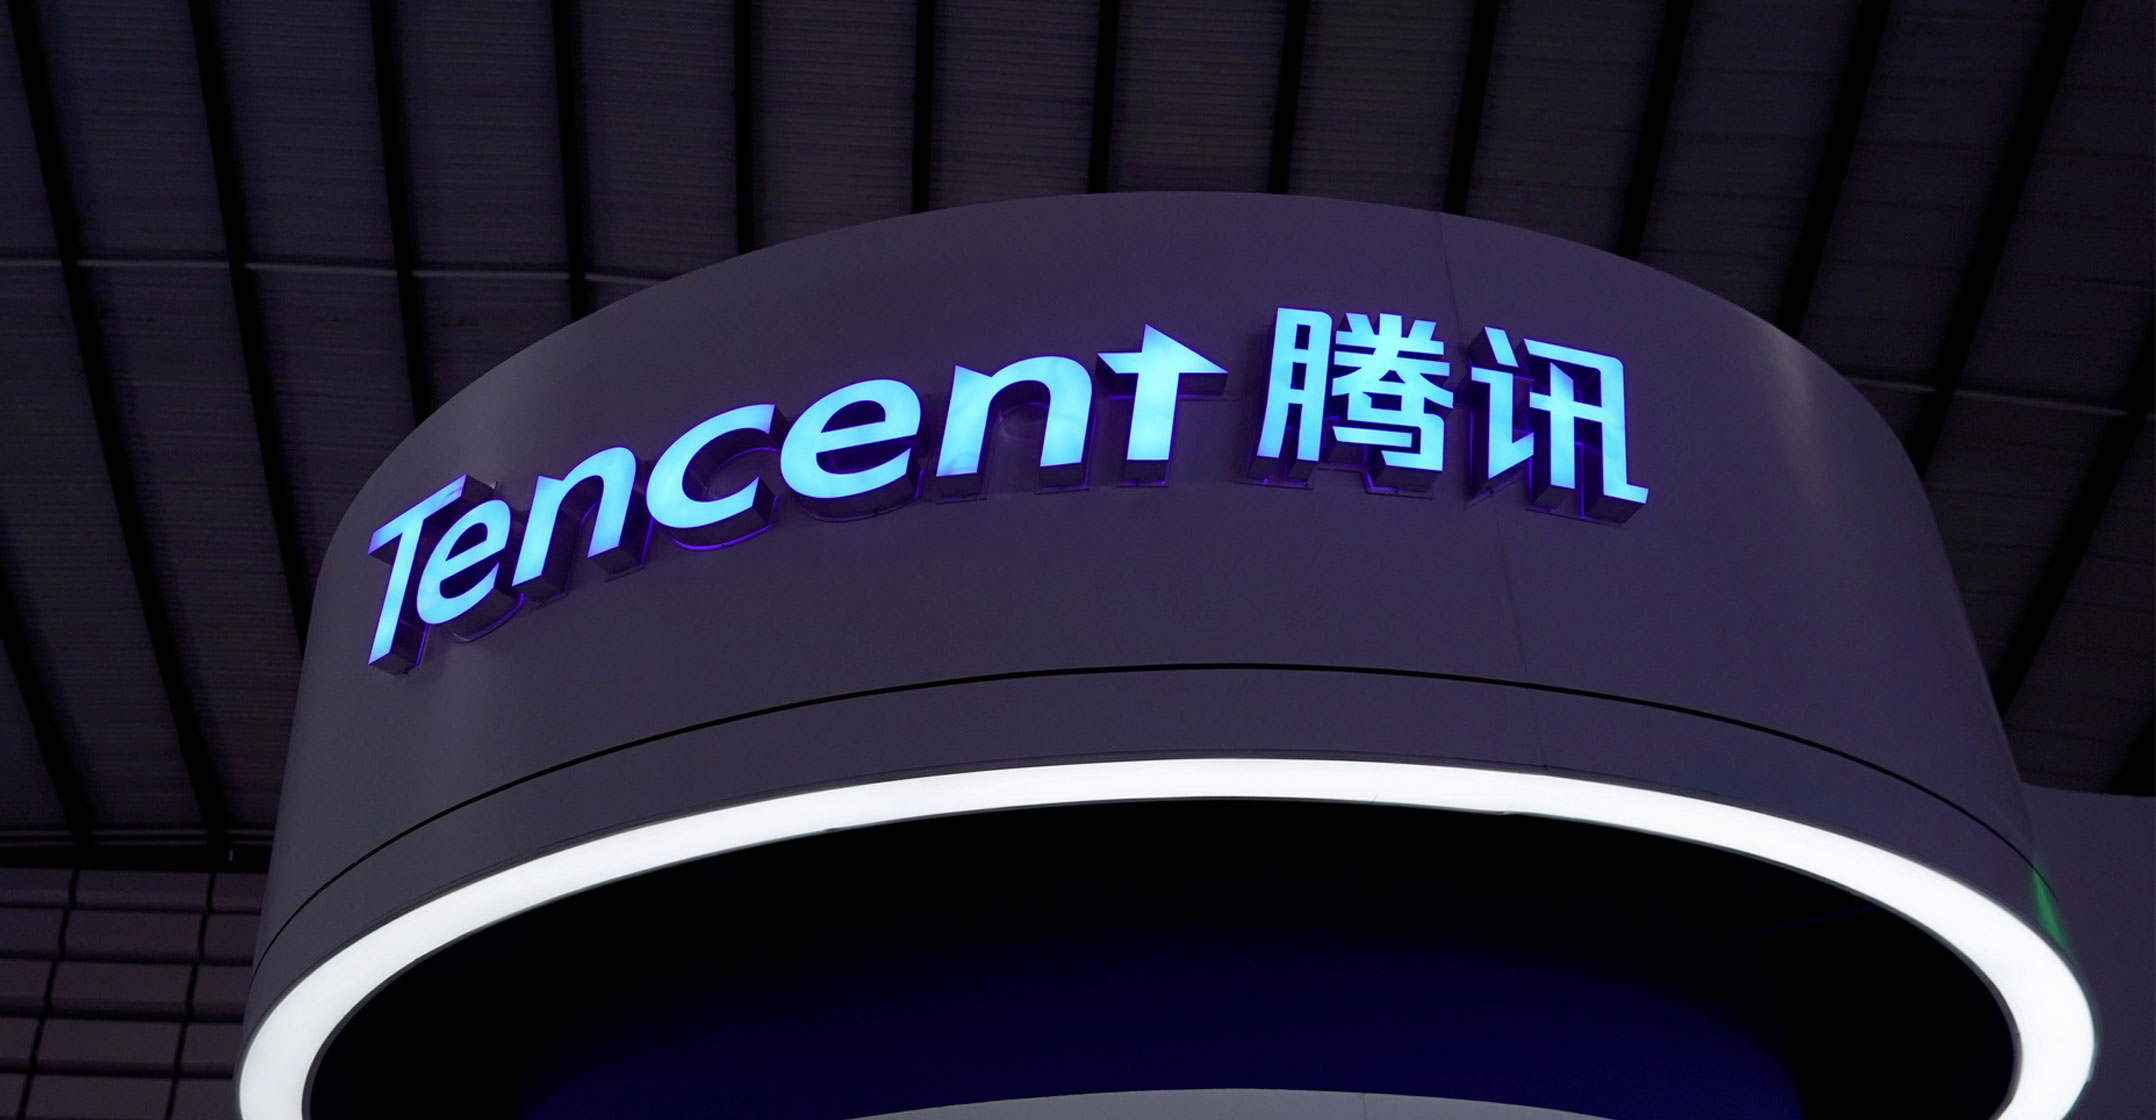 Tencent shares hit new record as it opens US game studio - TechCentral